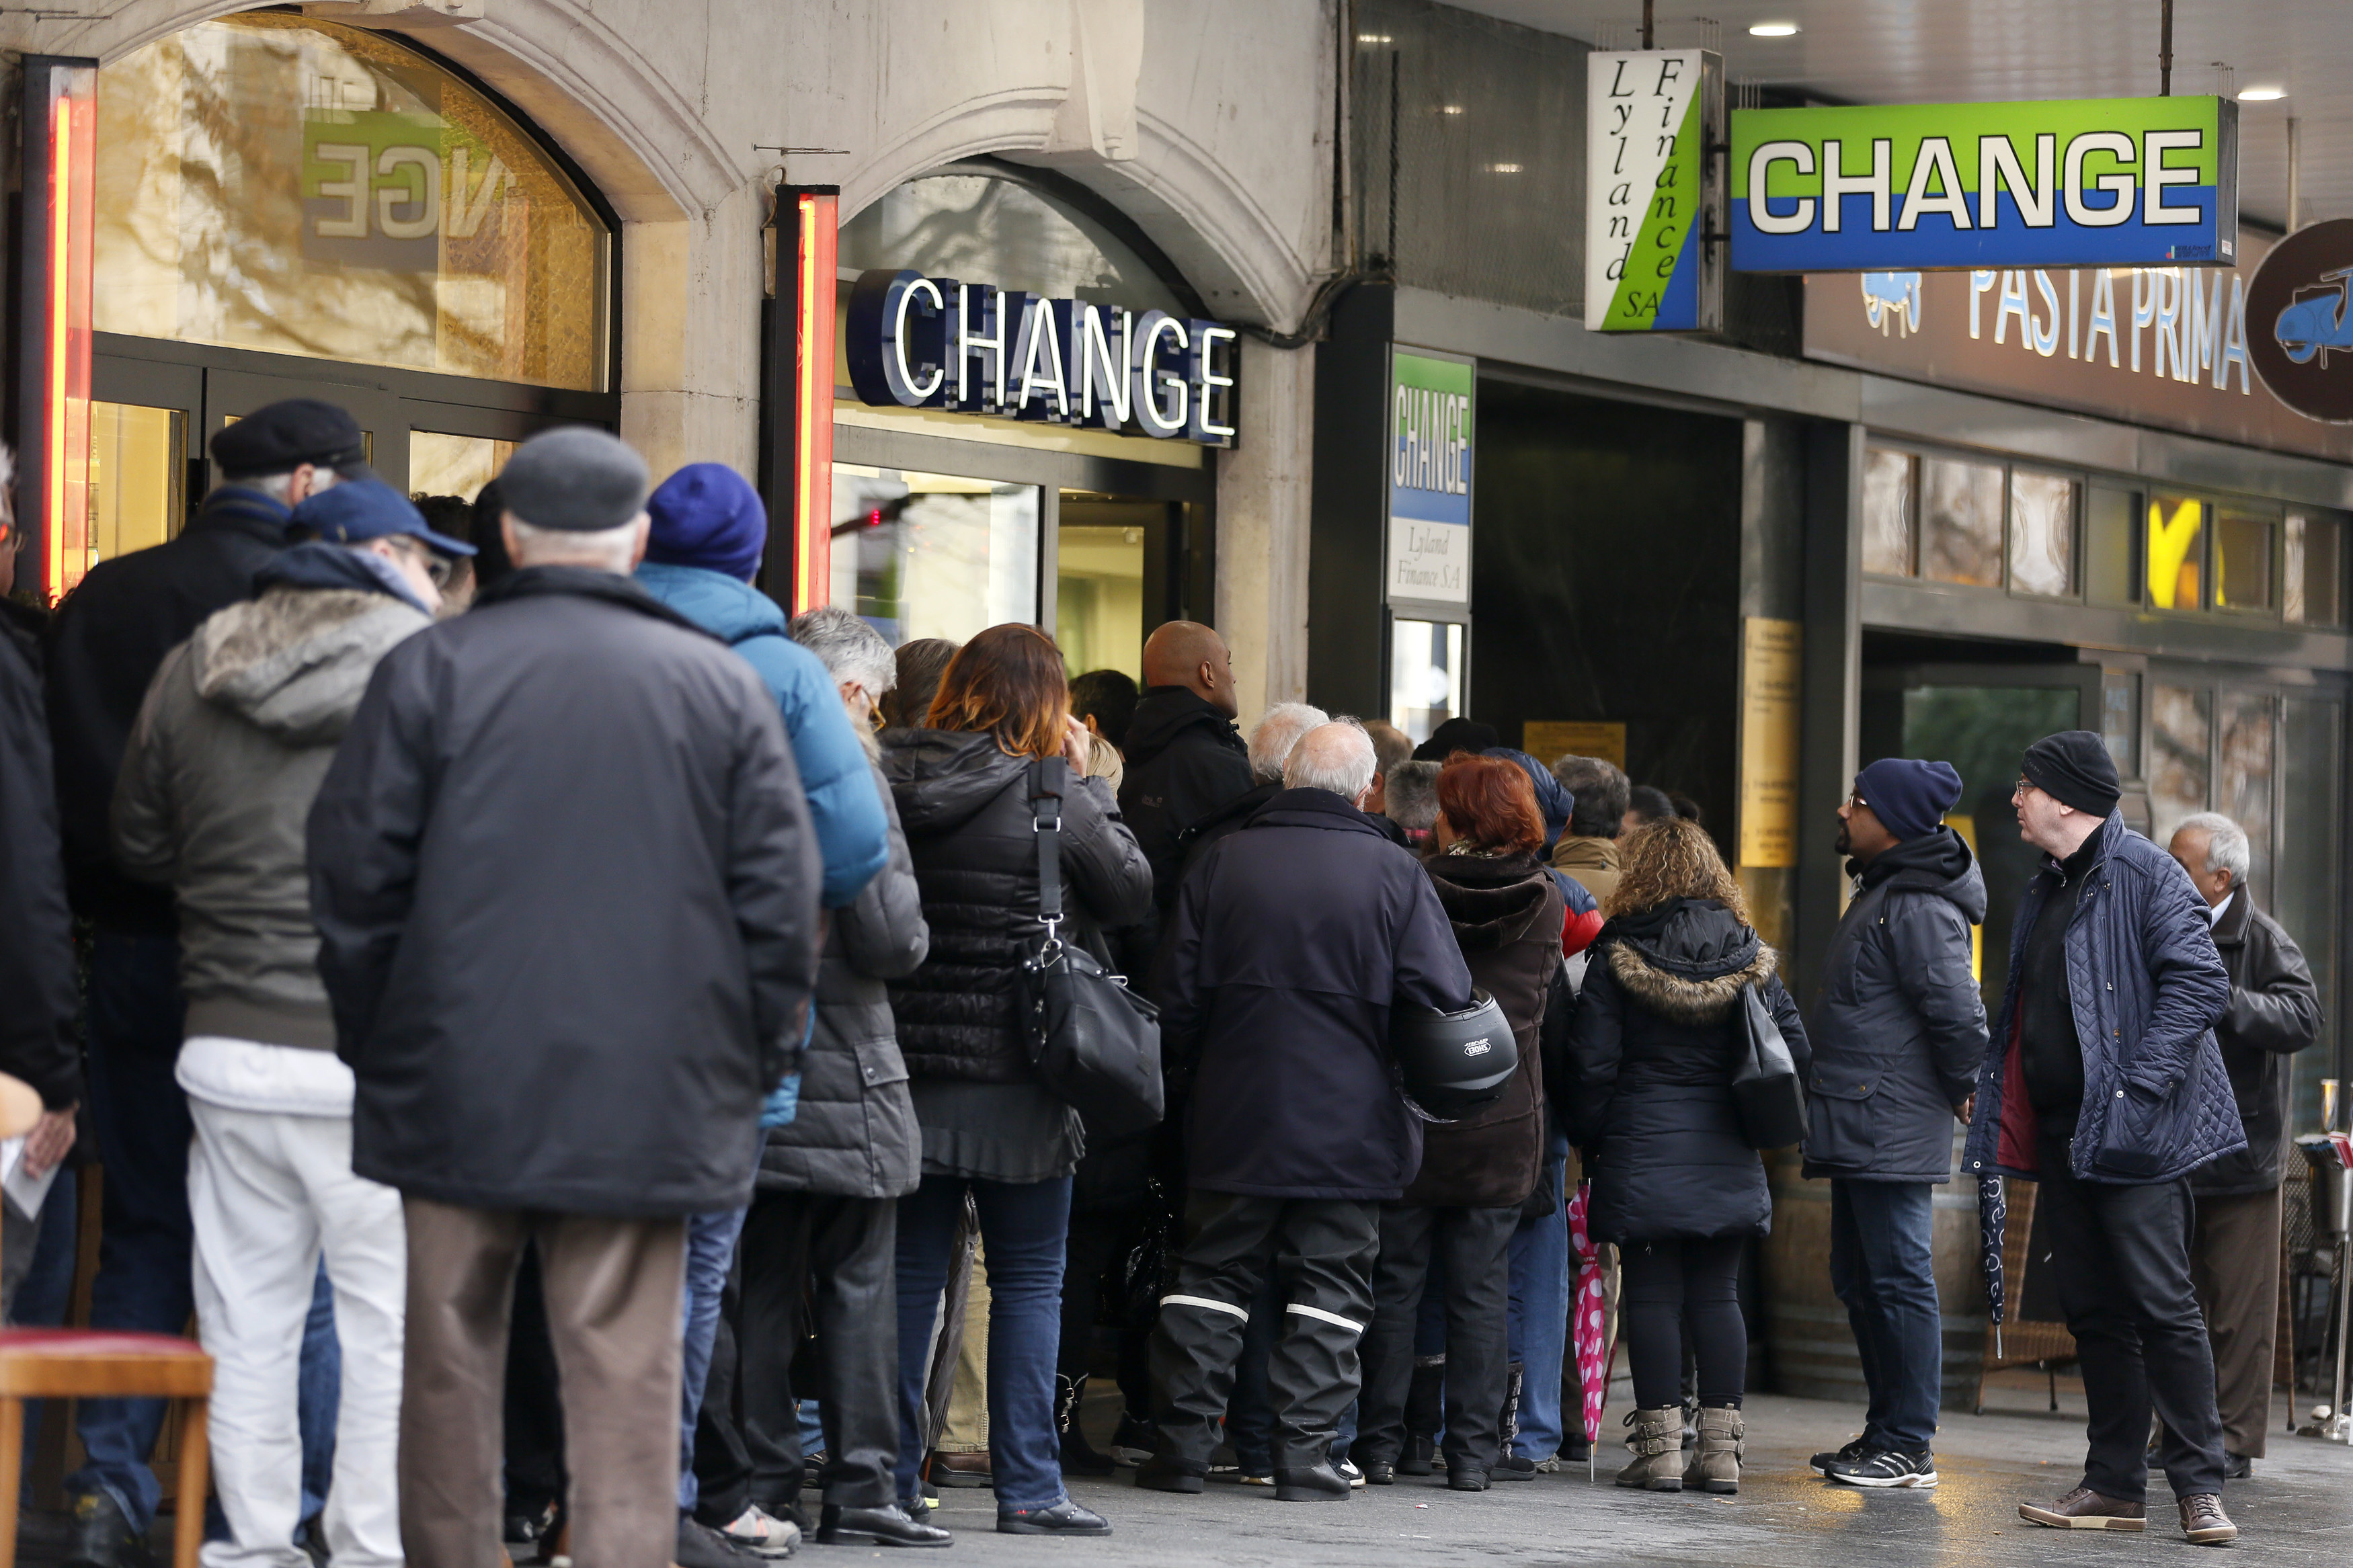 People queue outside a currency exchange office in Geneva, January 16, 2015. Swiss stocks sank on Friday, extending the sell-off sparked by the Swiss National Bank's surprise decision to remove a ceiling on the Swiss franc that sent the currency soaring. REUTERS/Pierre Albouy (SWITZERLAND  - Tags: BUSINESS POLITICS)   - RTR4LOLV